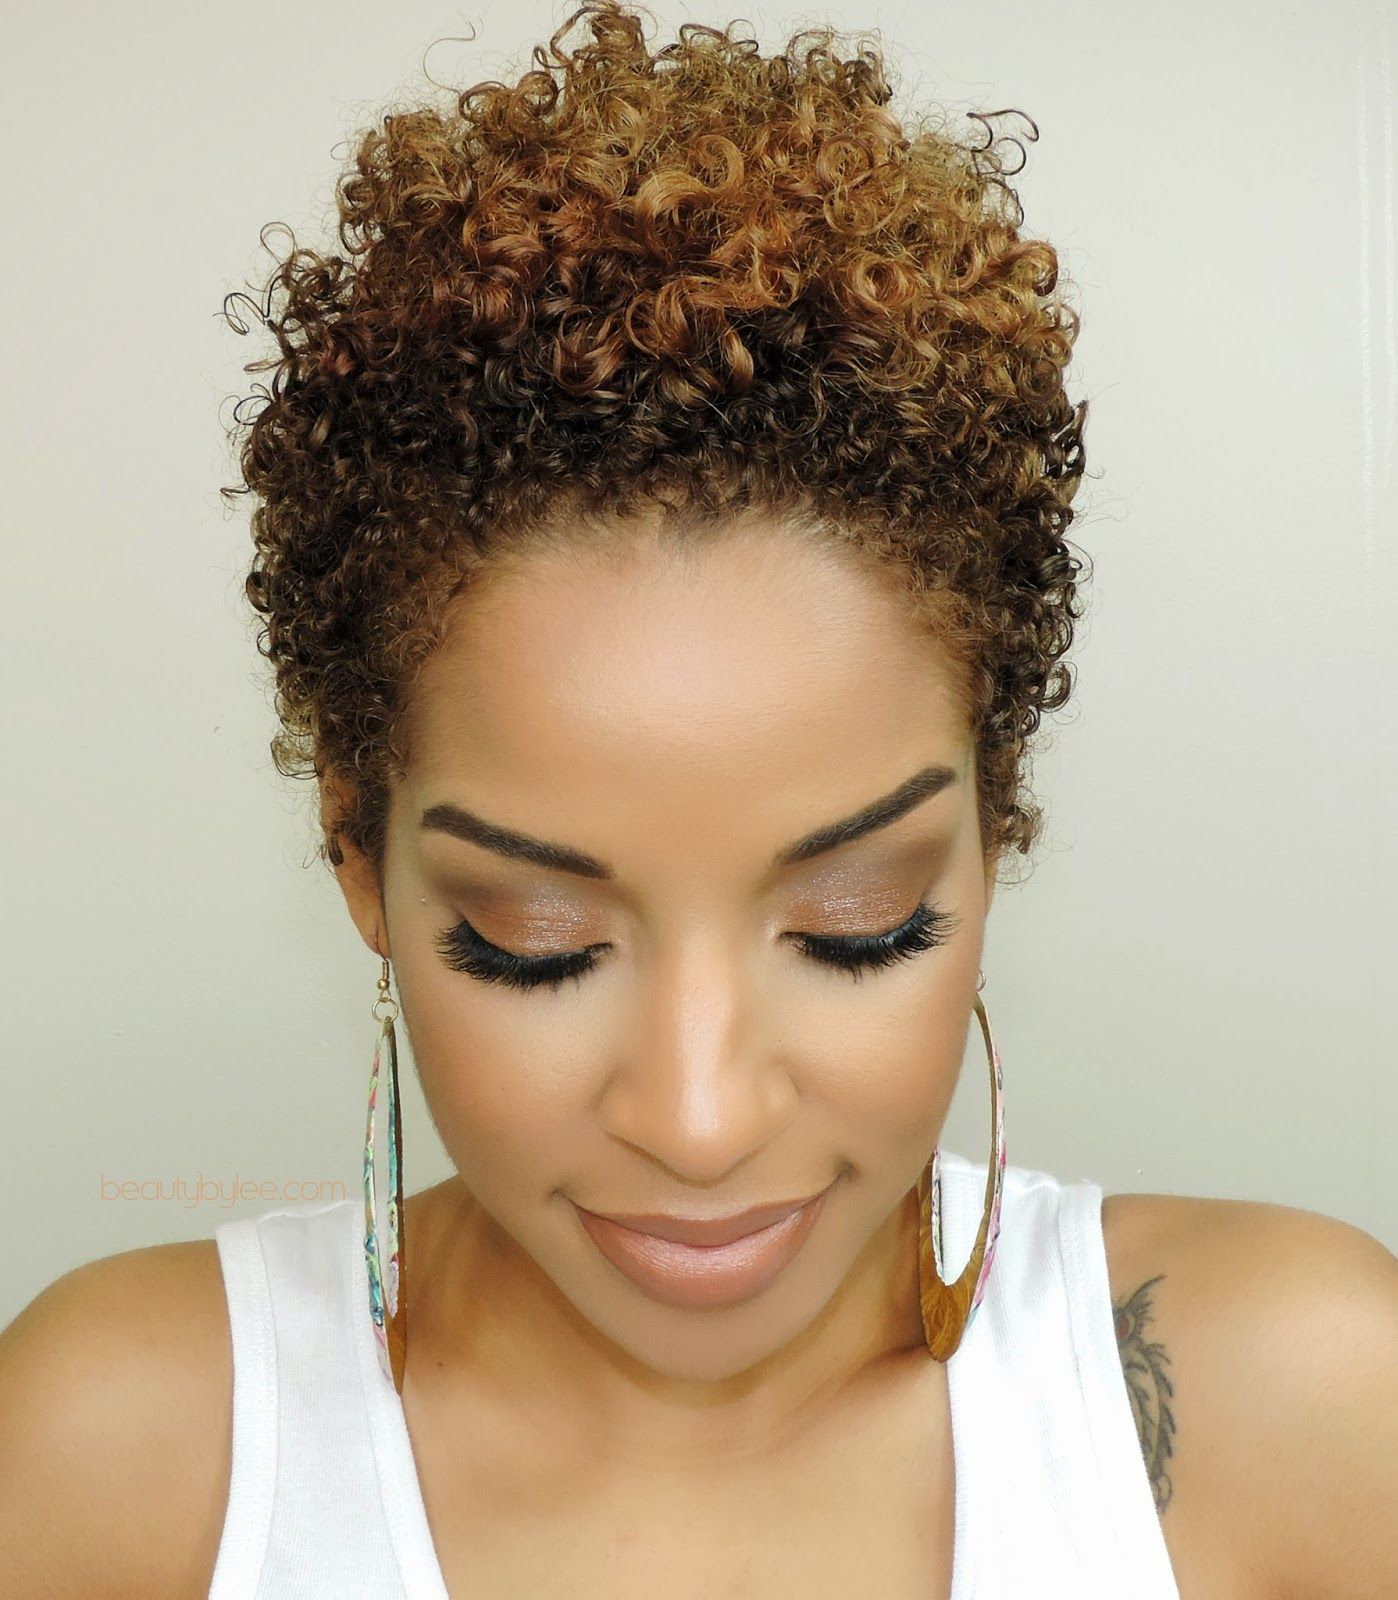 Natural hairstyles for black women do it yourself - Do You Love Your Short Hair We Have A Special Love Affair Wit Short Styles Here Are 30 Pixie And Twa Styles We Are Absolutely Loving Today